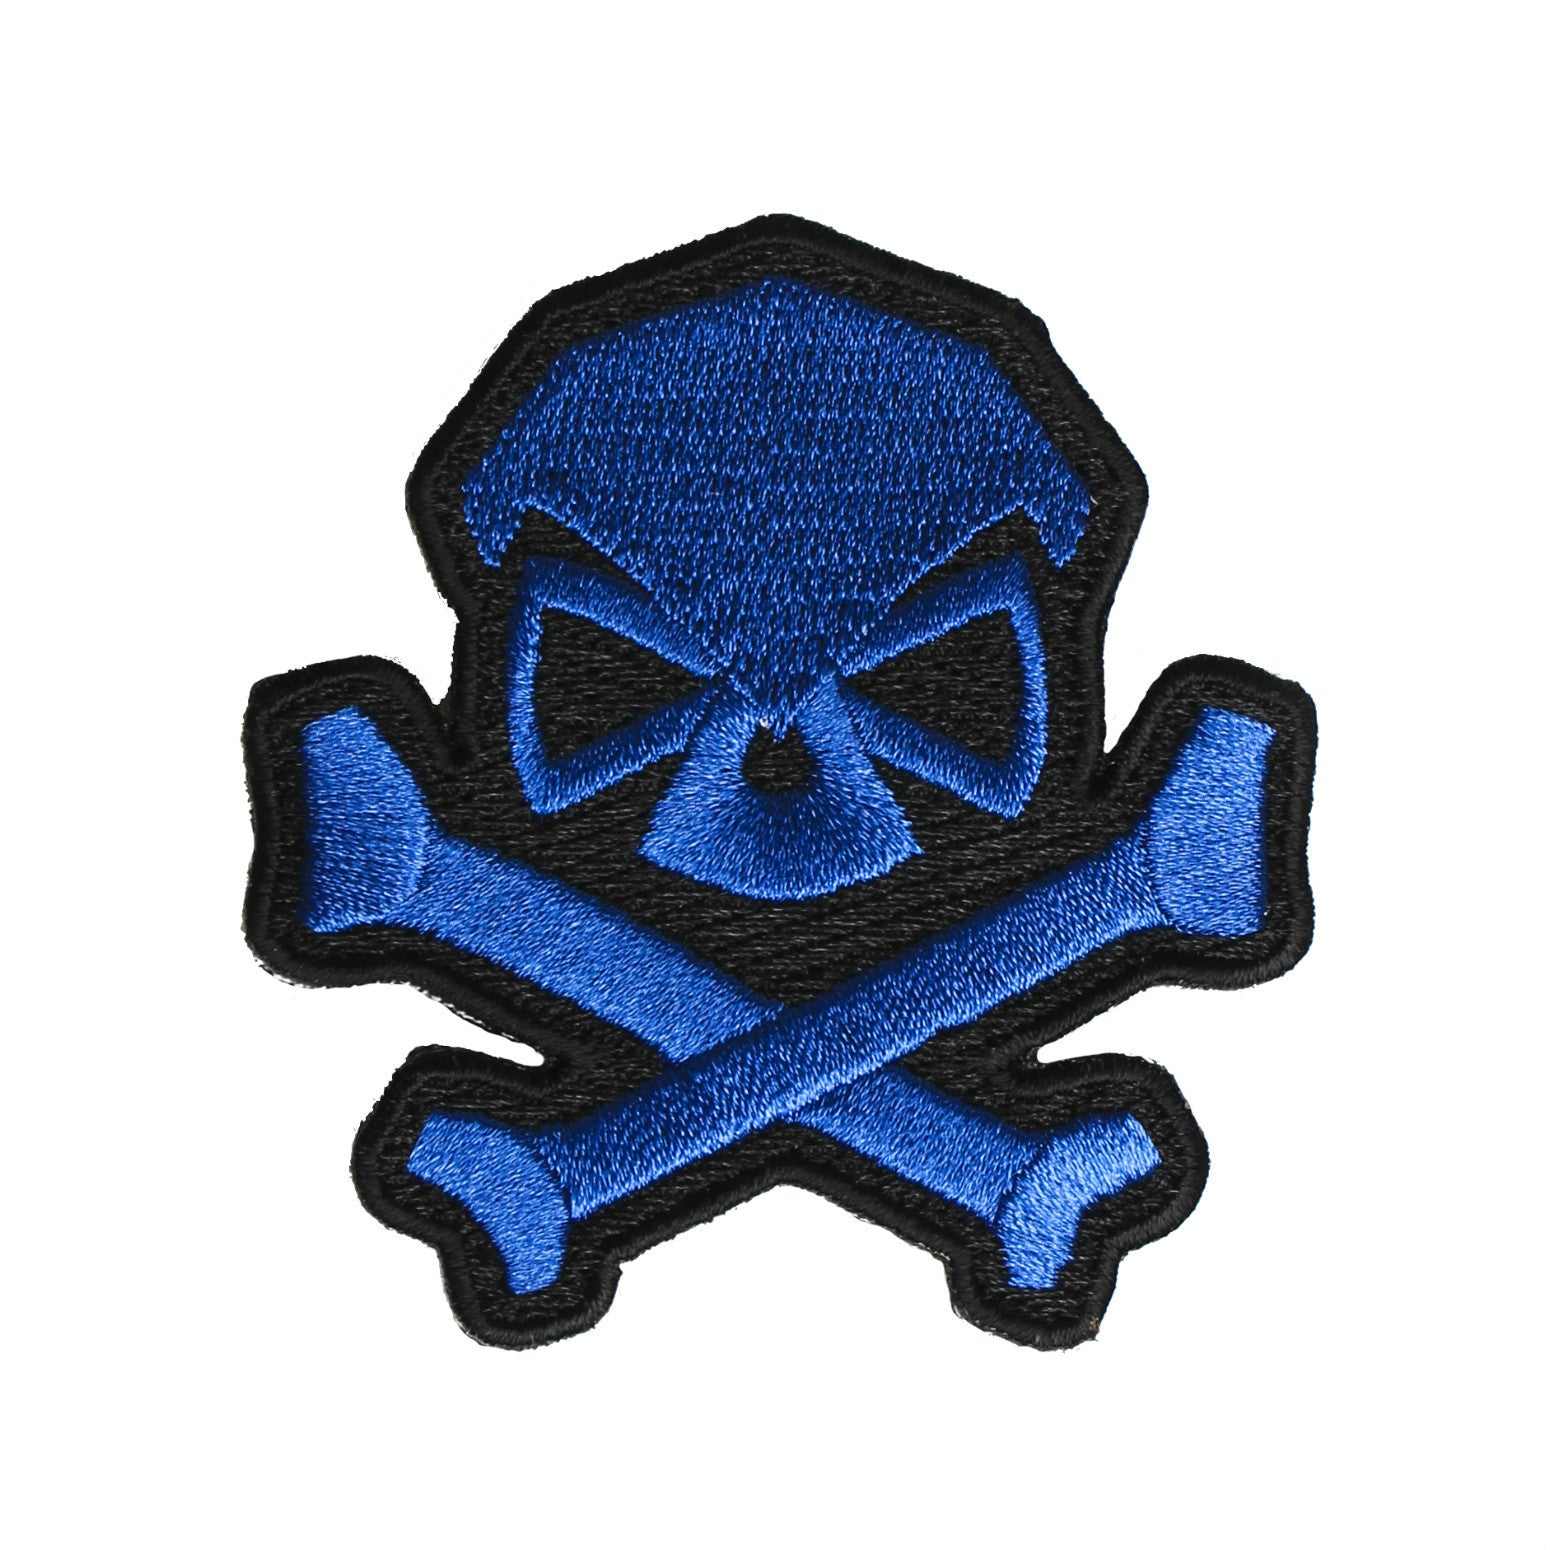 Skull & Bones Patch - Blue - Patches - Pipe Hitters Union